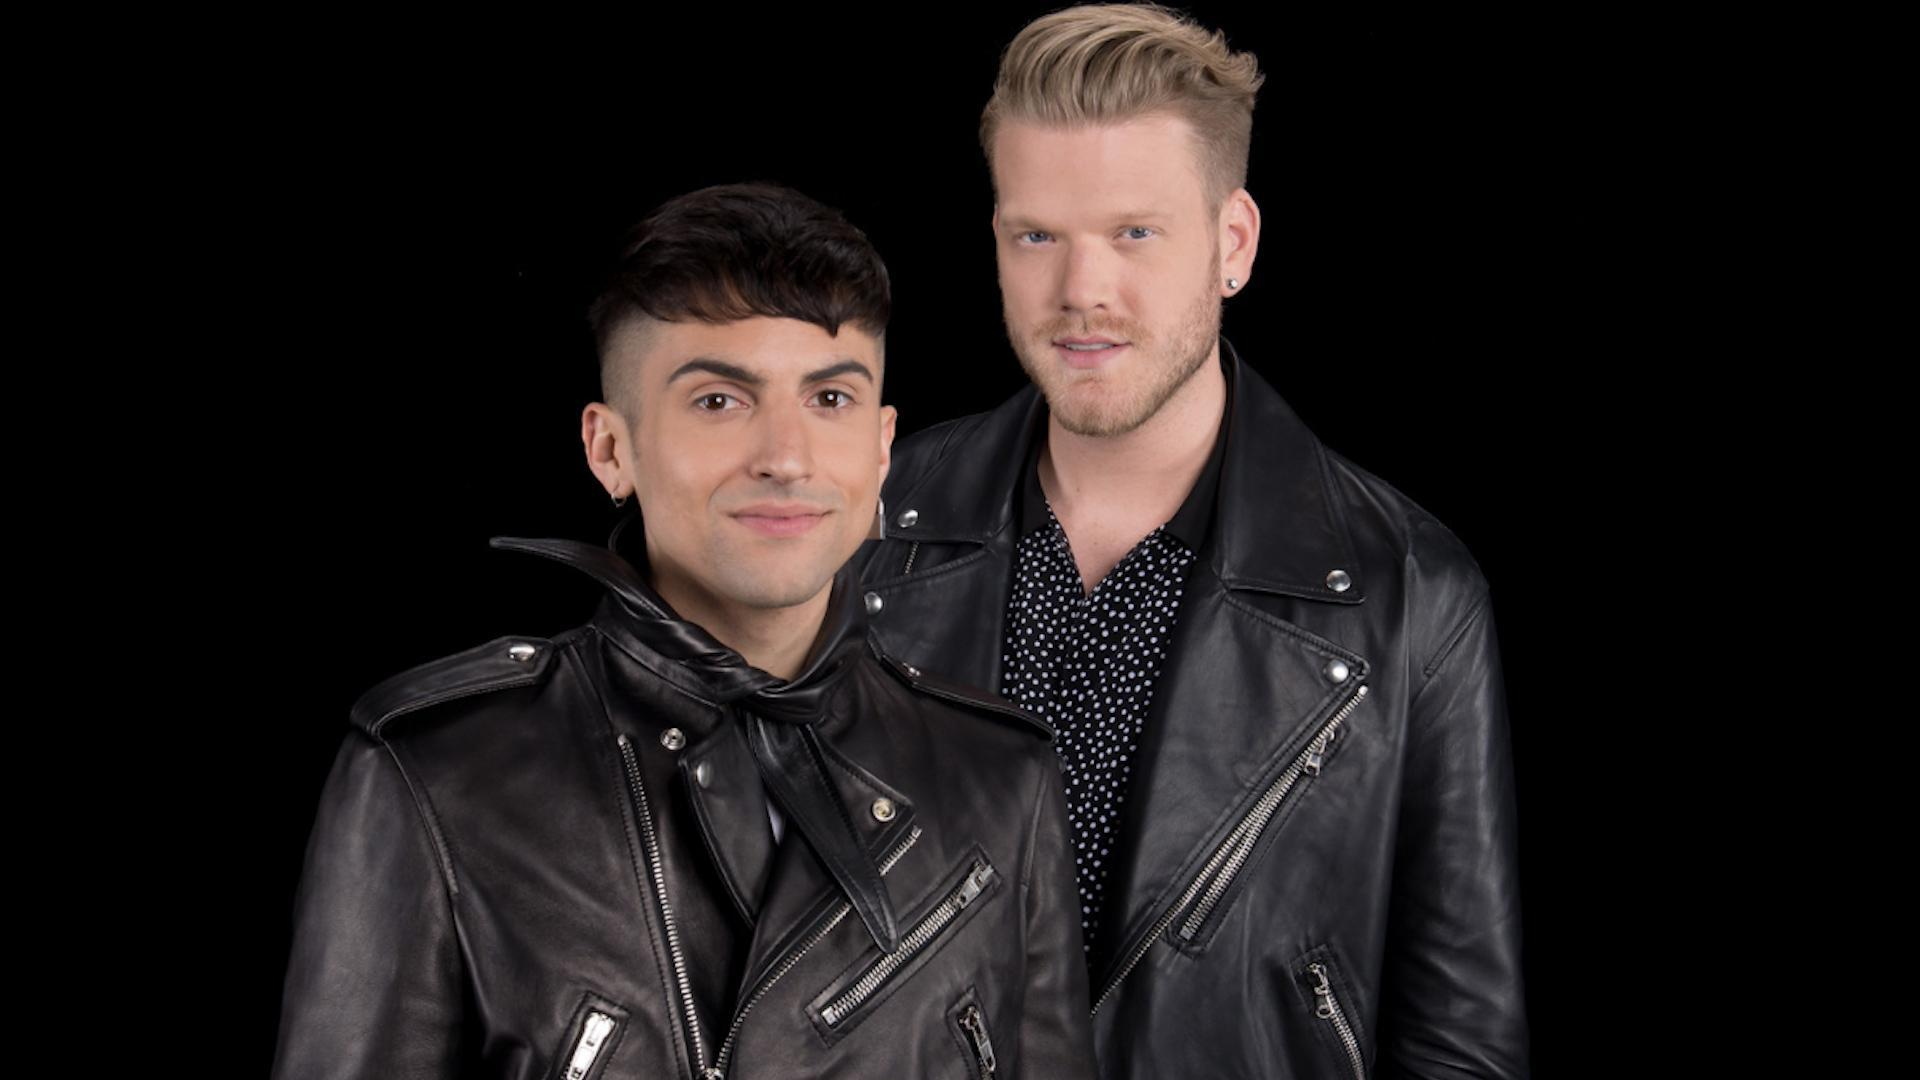 Superfruit dating advice